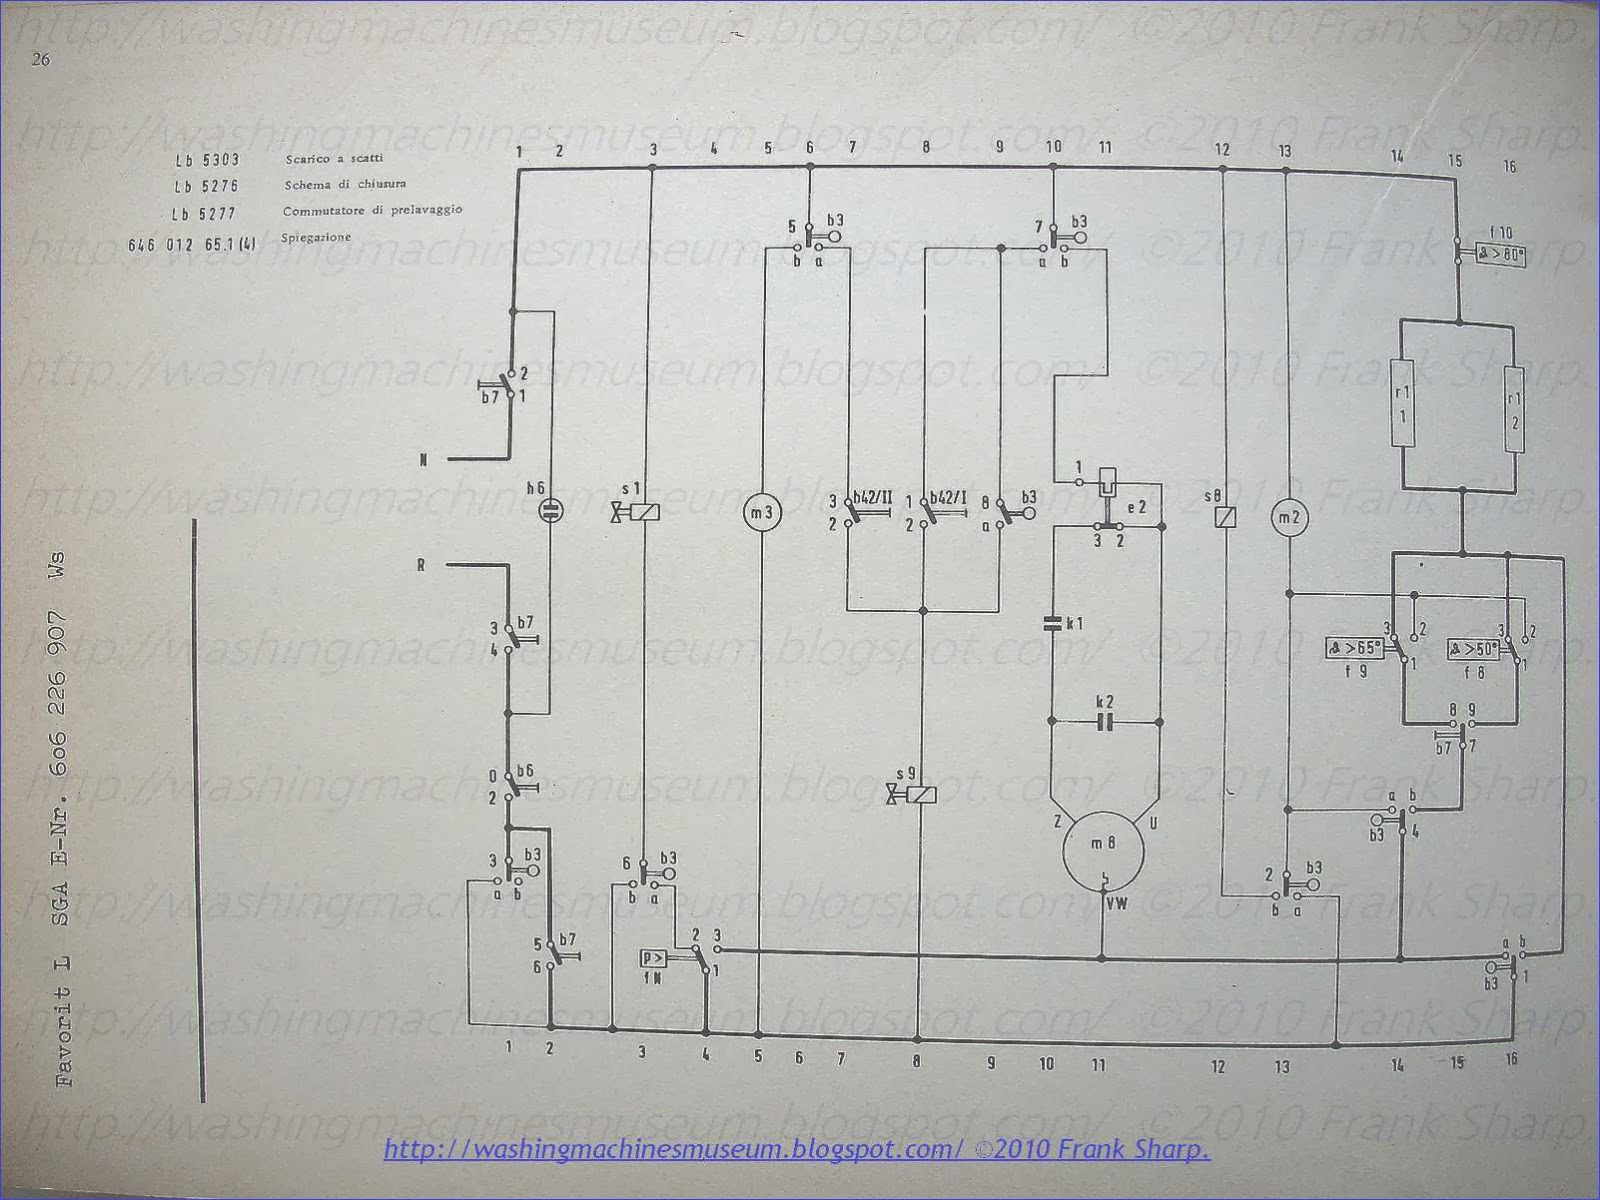 IMGH_07715__WMMS washer rama museum aeg favorit l sga e nr 606 226 907 ws henry hoover wiring diagram at n-0.co